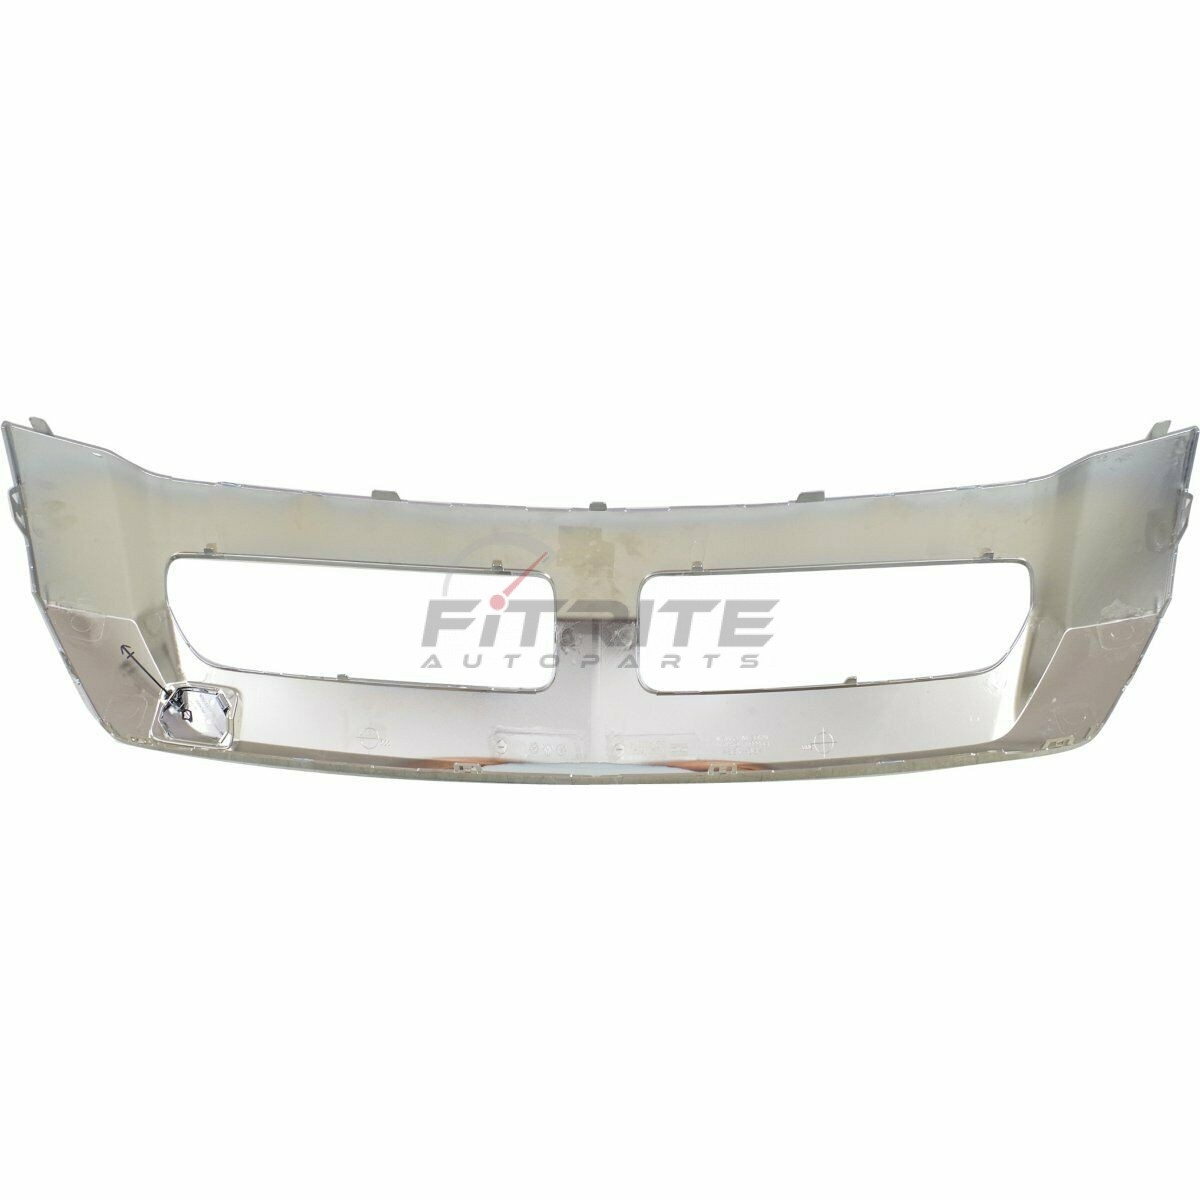 Front Lower Bumper Molding For 2012-2015 Mercedes-Benz